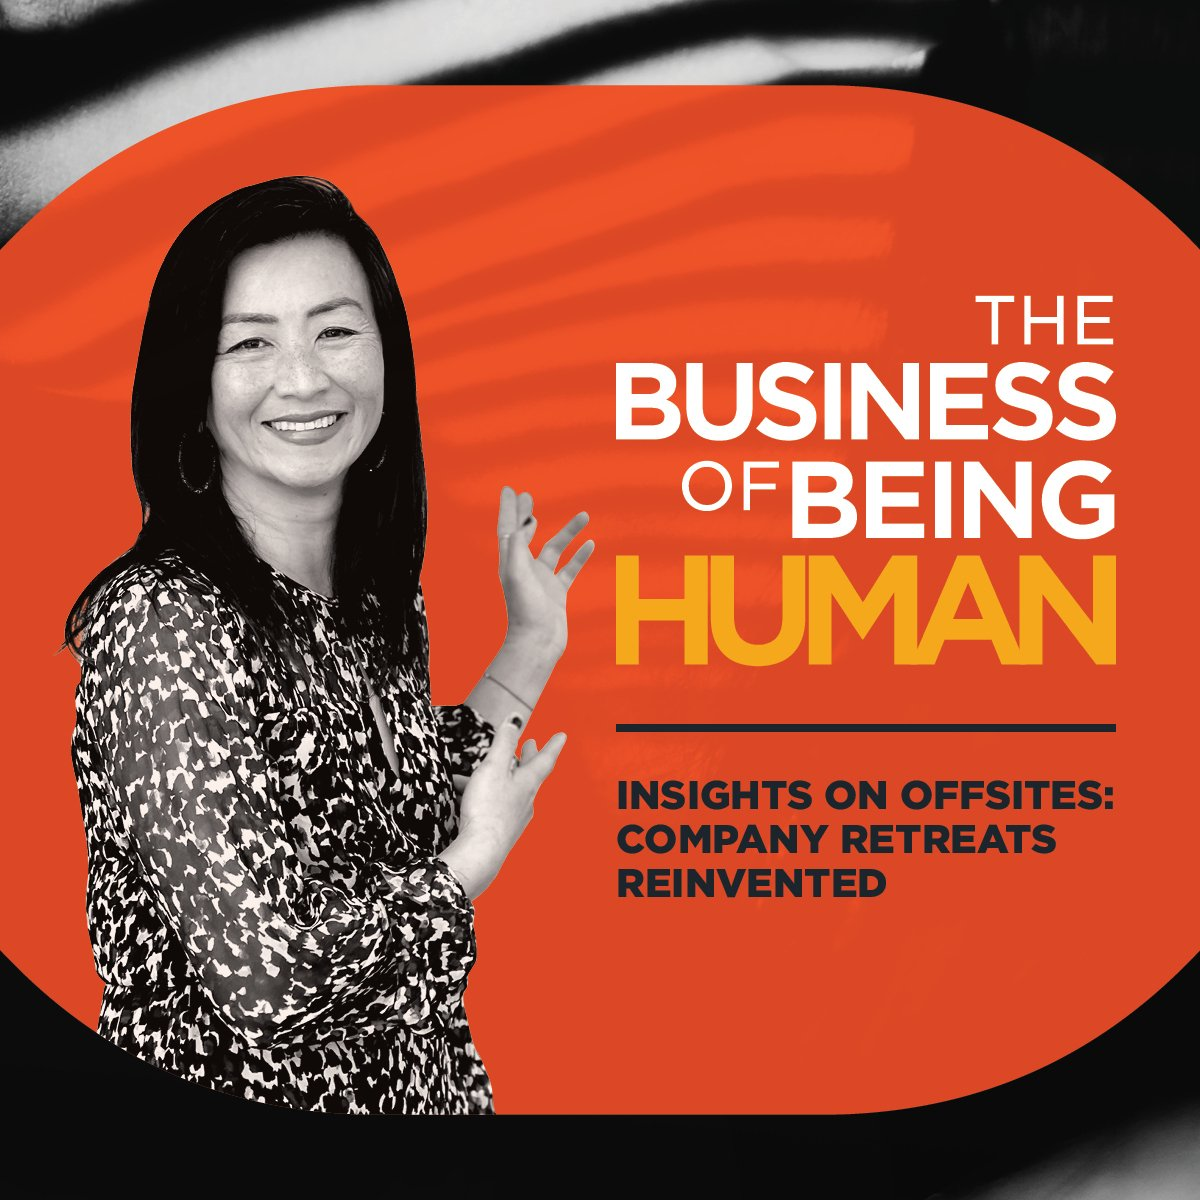 EP 12: From Insights to Offsites: Company Retreats Reinvented